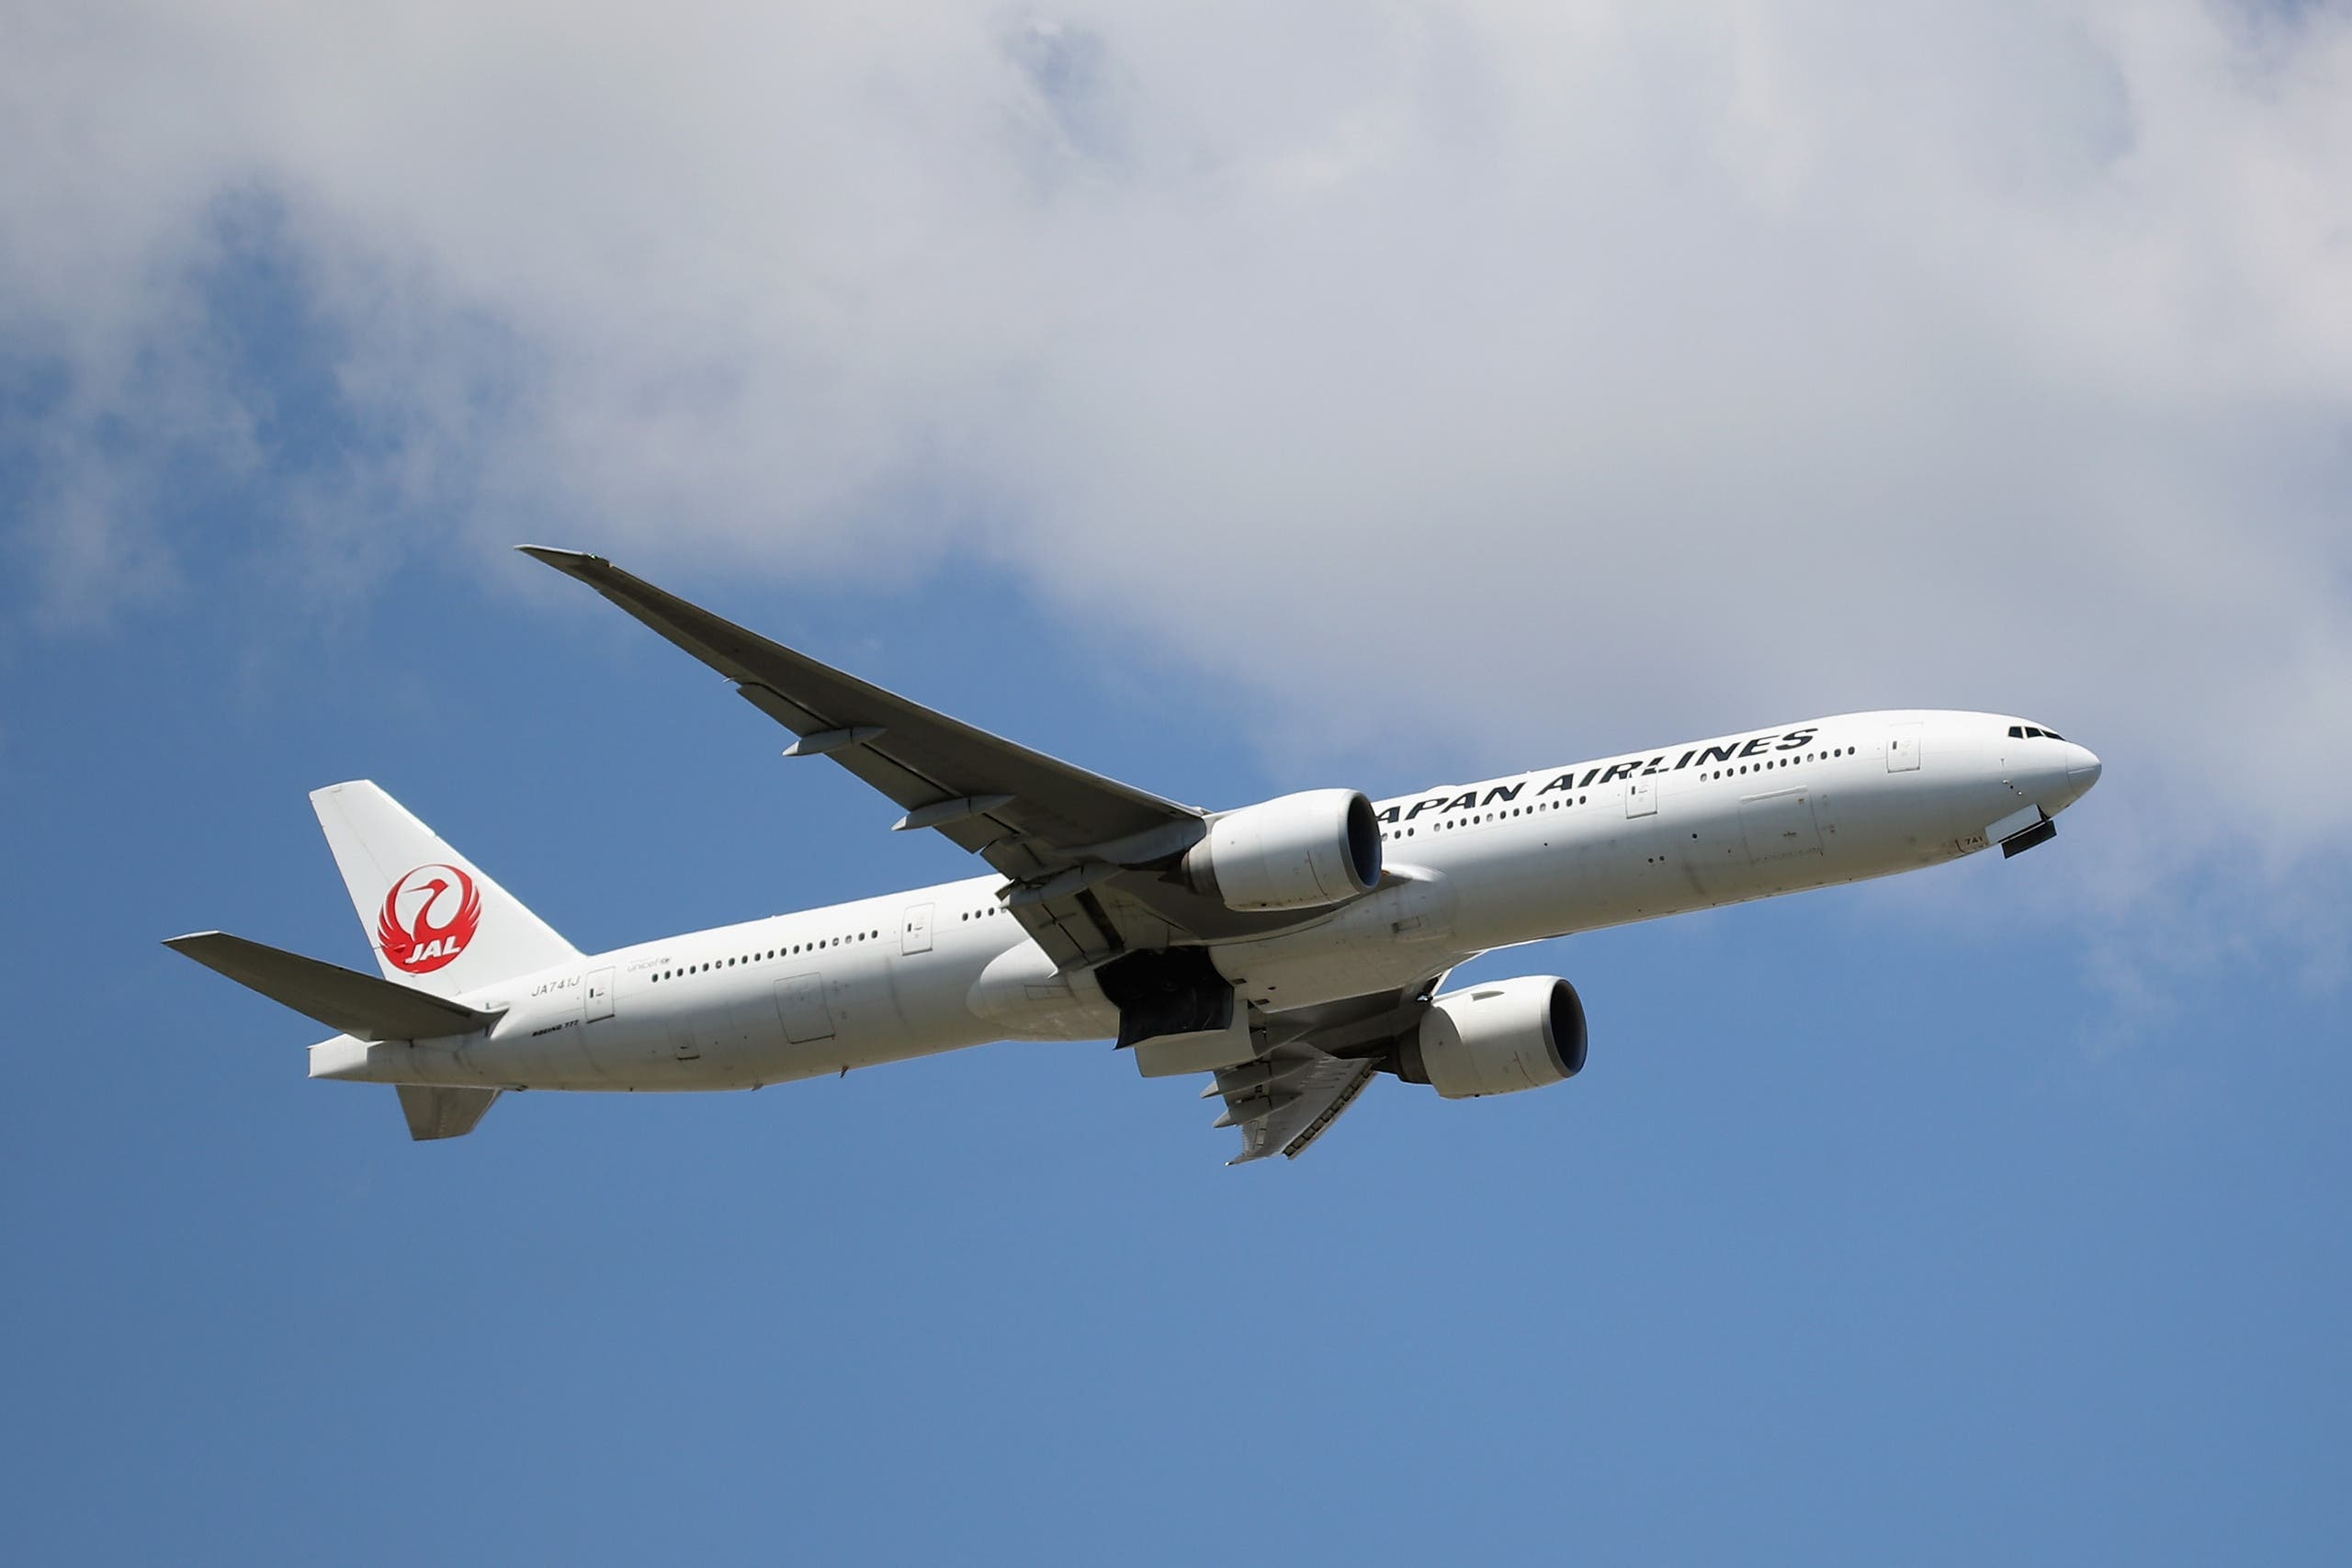 A Boeing 777-346 (ER) operated by Japan Airlines takes off from JFK Airport on August 24, 2019 in the Queens borough of New York City. (AFP)